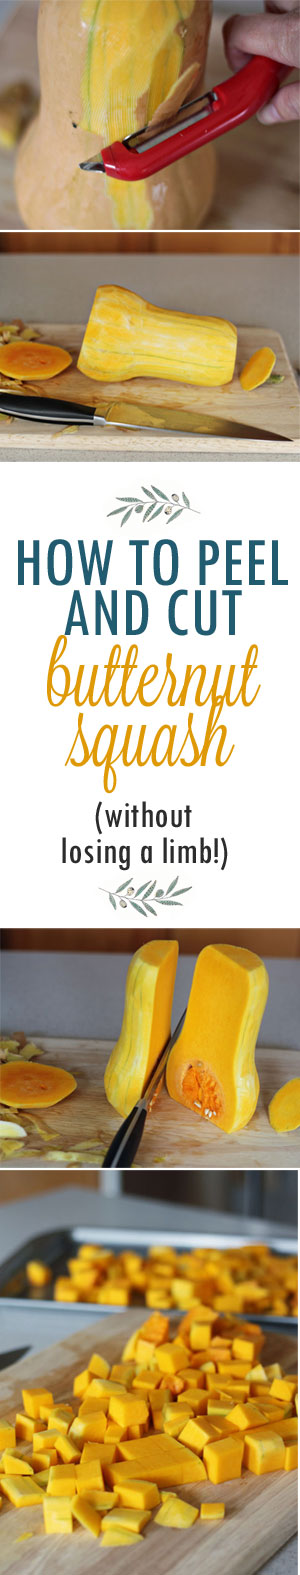 How to Peel and Cut a Butternut Squash (without losing a limb!) - 1. Peel with vegetable peeler 2. Cut off the top and bottom 3. Set solidly on bottom and cut in half down the middle 4. Scoop out seeds 5. Cut into slices 6. Cut into spears 7. Cut spears into cubes